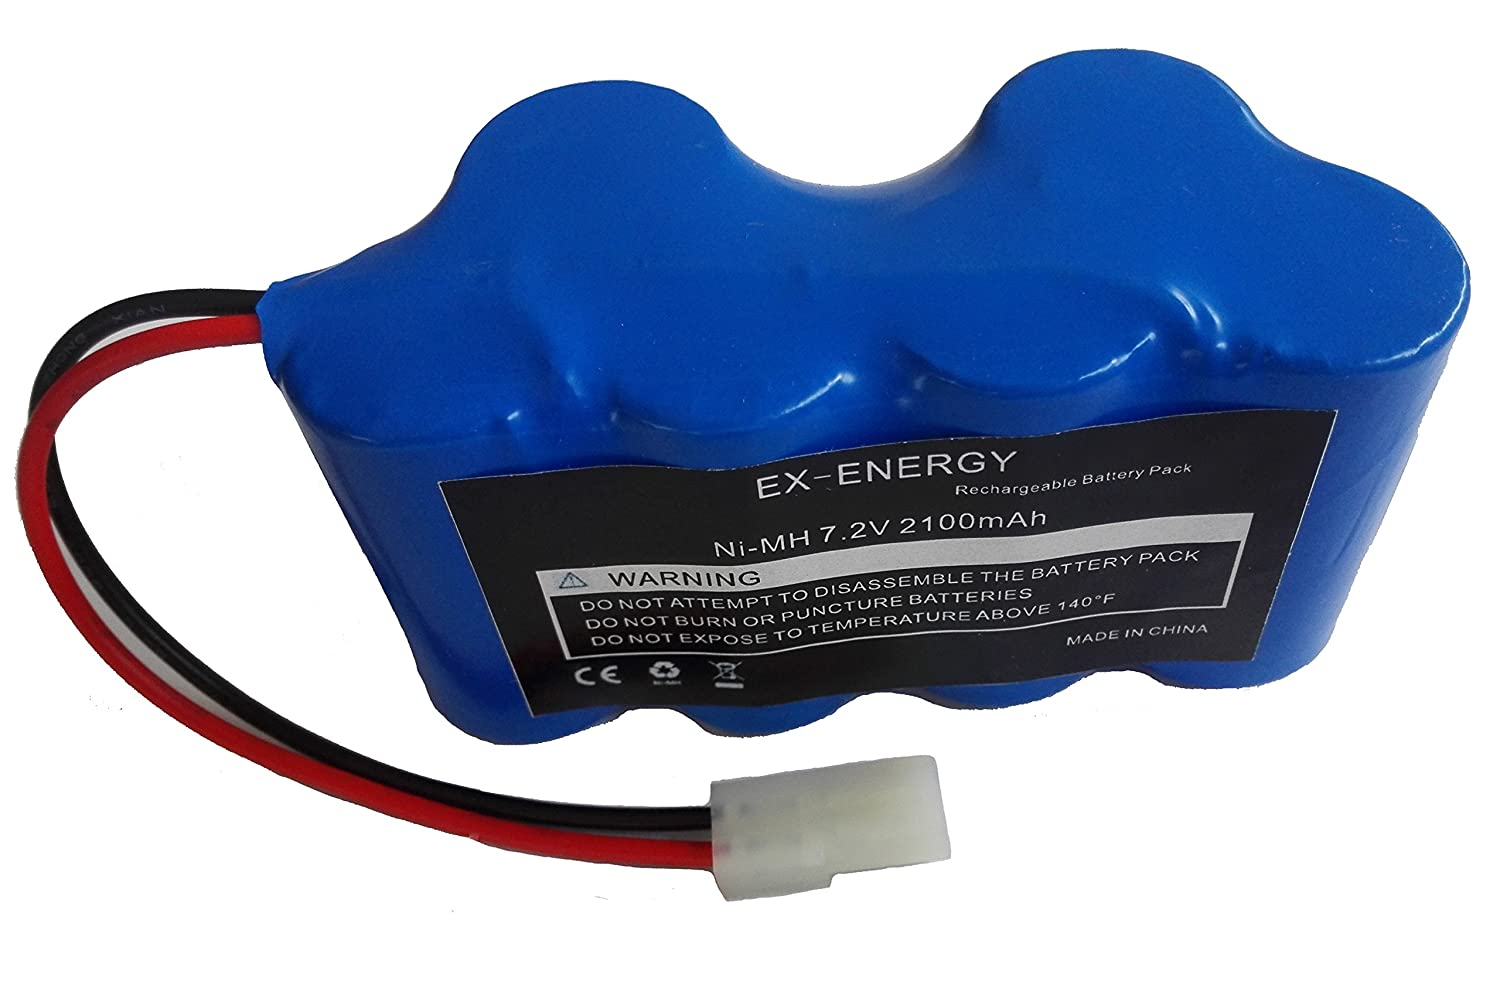 EX-ENERGY Euro Pro Shark 7.2V 2.1Ah Ni-MH Replacement Battery Pack for Shark Vacuum V1950 VX3 Replacing XB1918